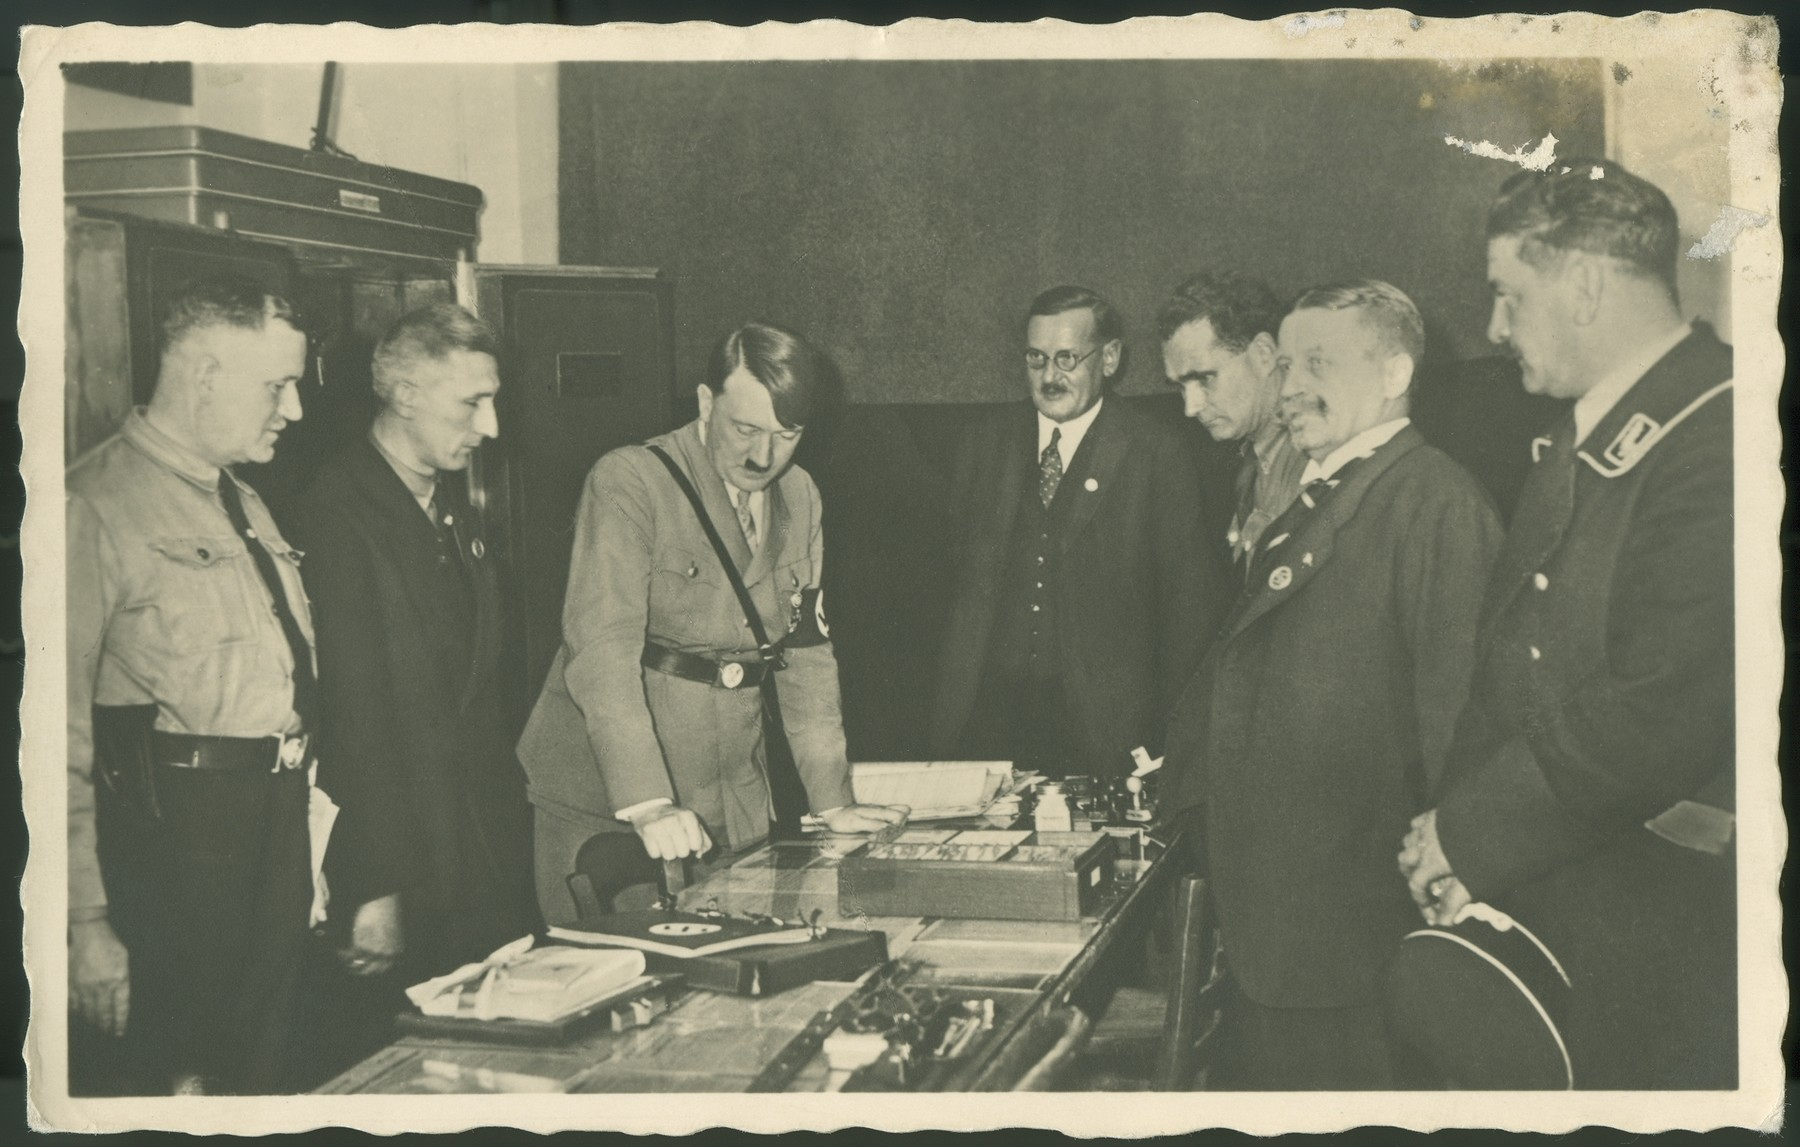 Adolf Hitler and other dignitaries at the opening of the Nazi Party museum in the Sterneckerbraeuhaus, which had been the Party's first headquarters.